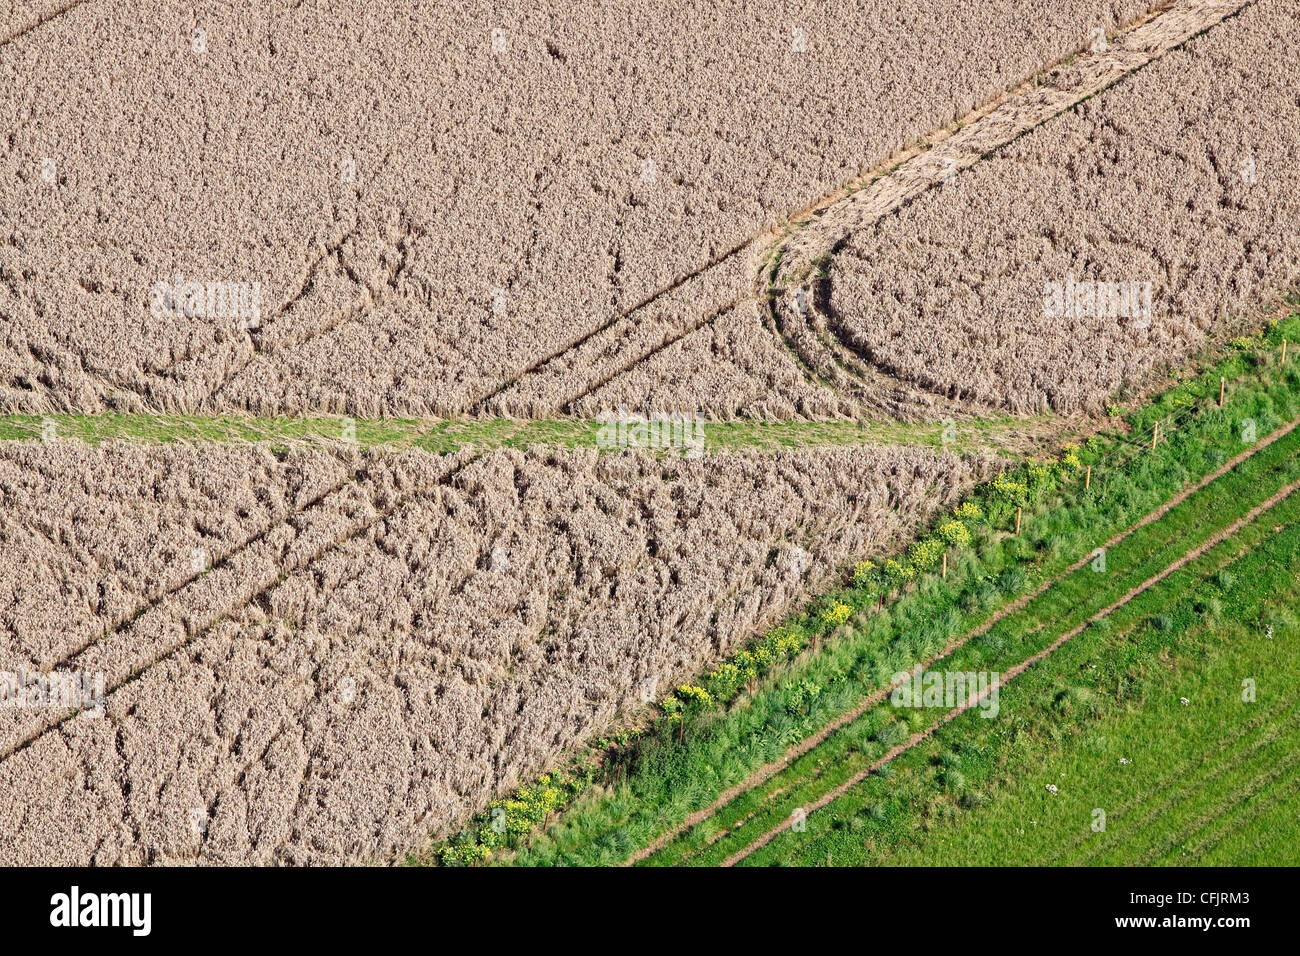 Aerial view of crop damage in a field of wheat - Stock Image